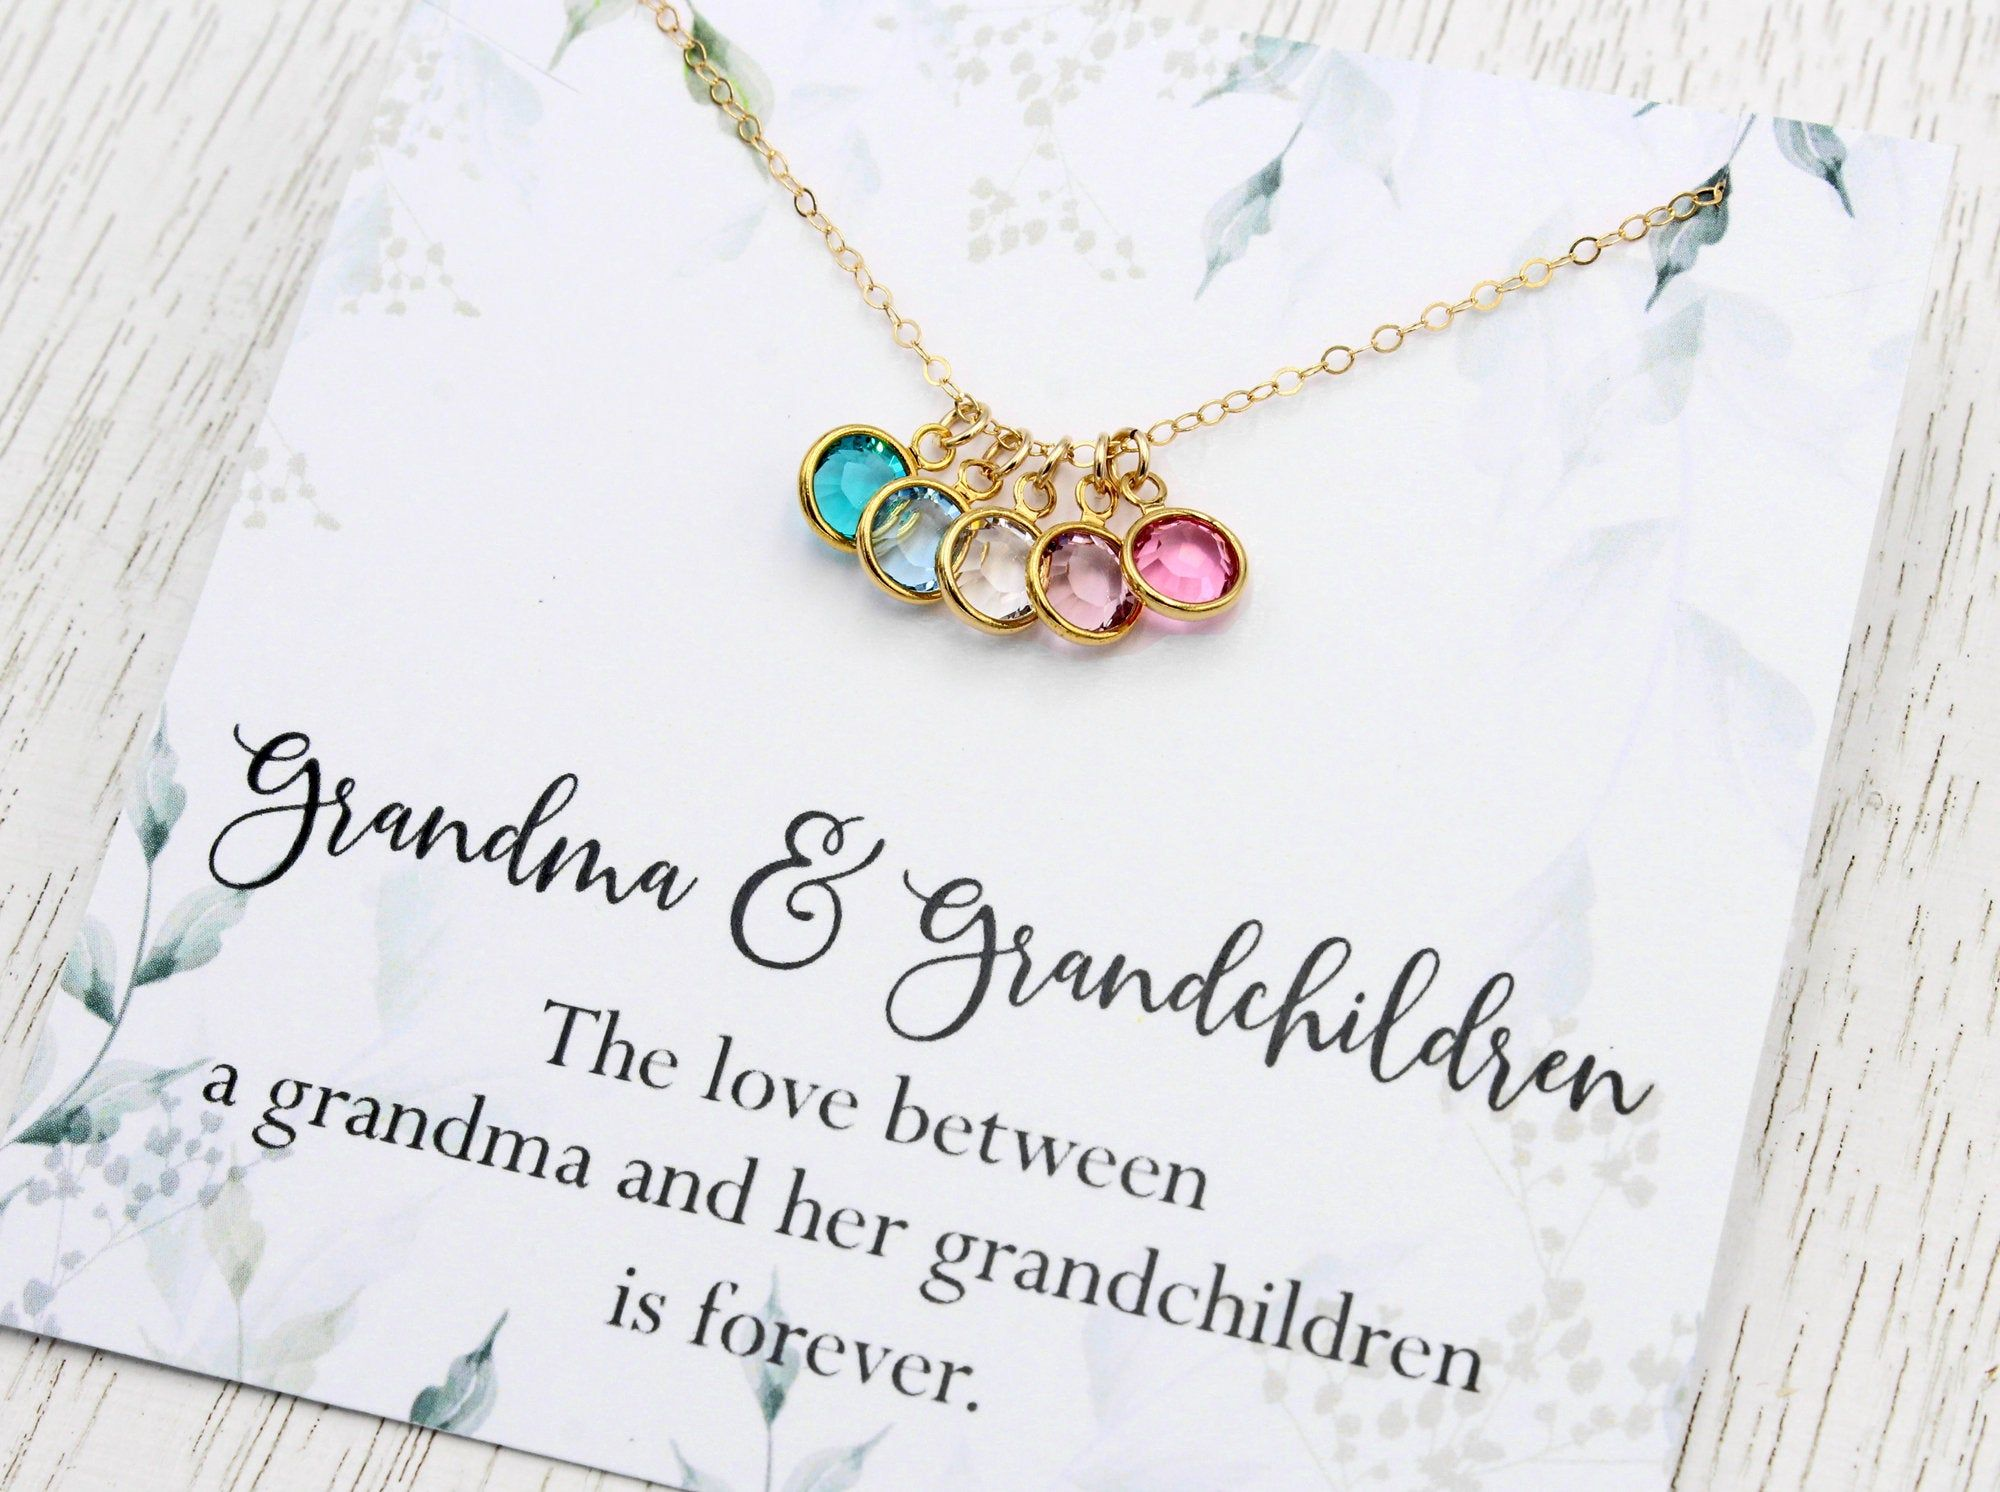 Personalized Necklace for Grandmother Crystal Birthstone Necklace for Mom Gift for Mom in Silver Gold or Rose Gold Jewelry for NANA